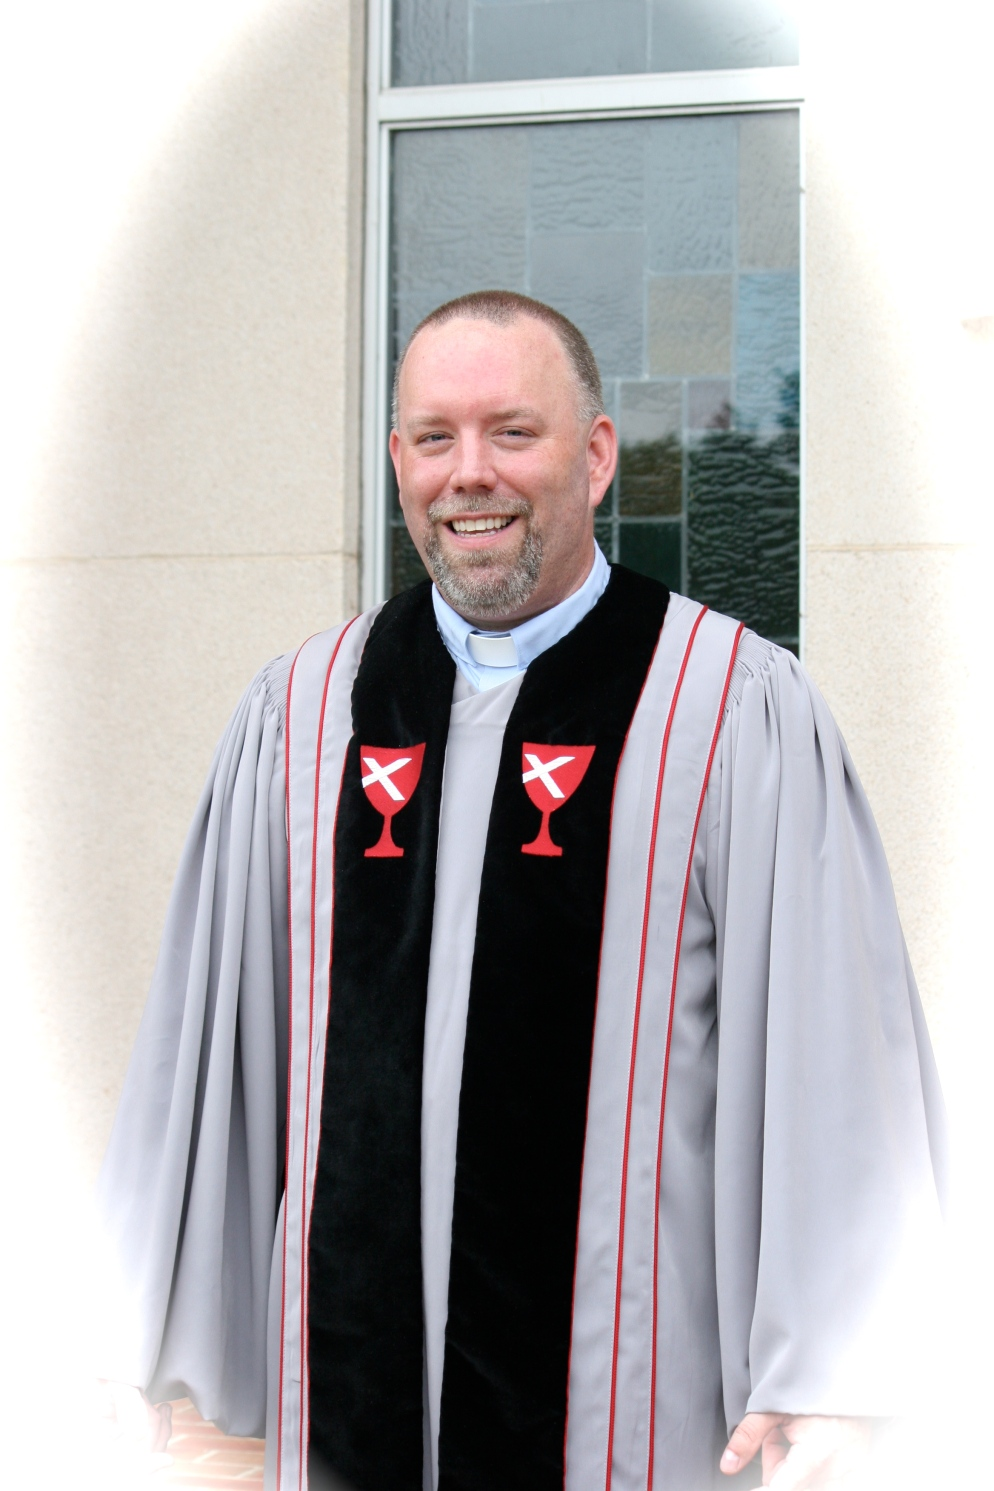 Trinitys servants trinity united church of christ jamie started his service as pastor at trinity united church of christ on january 1 2017 with great excitement and enthusiasm he brings with him 22 years publicscrutiny Gallery